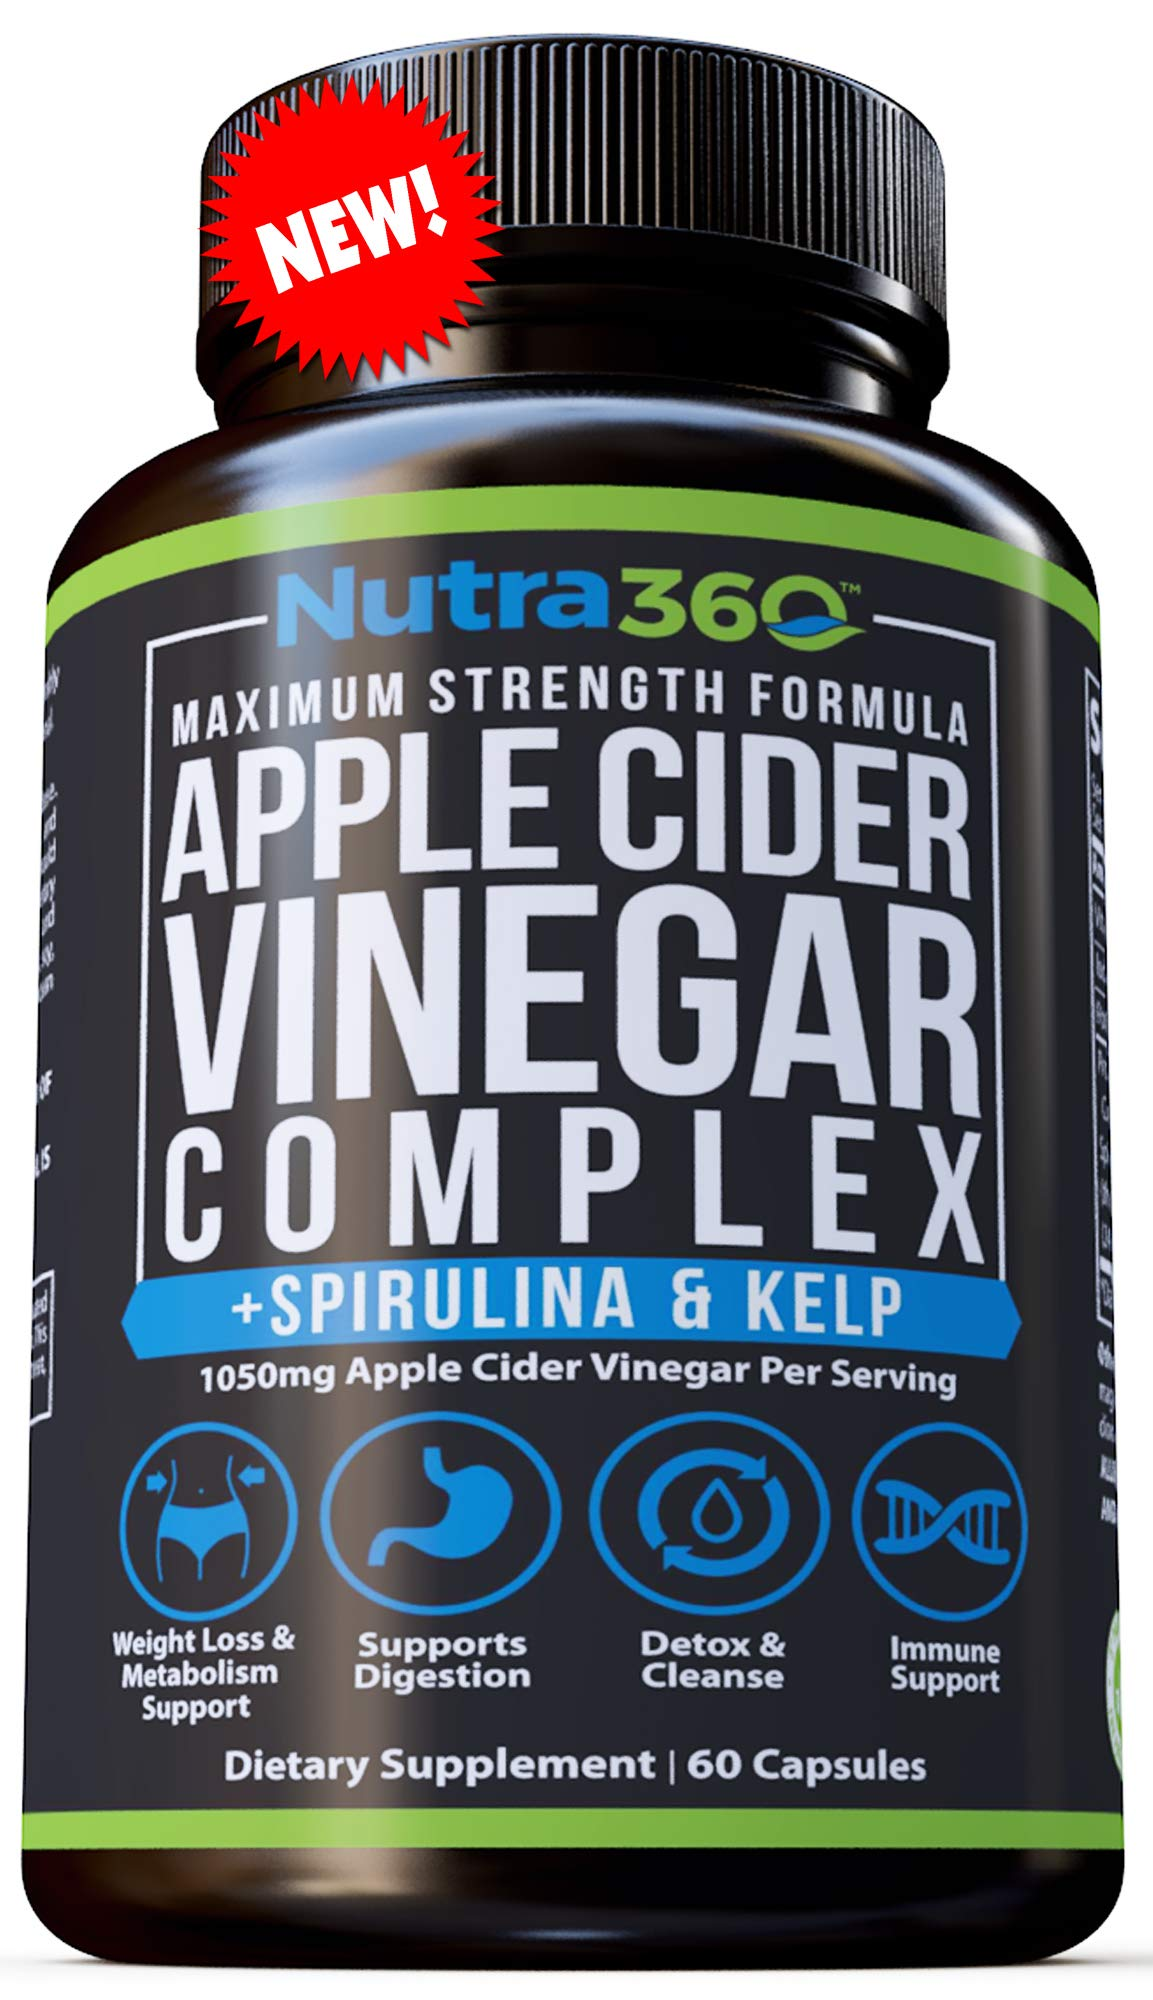 Apple Cider Vinegar Capsules by Nutra360 - Maximum Strength Dietary Supplement with Spirulina & Kelp - Aids Weight Loss, Metabolism, Digestion, Detox, Appetite suppressant- Paleo & Keto Diet Friendly by Nutra360